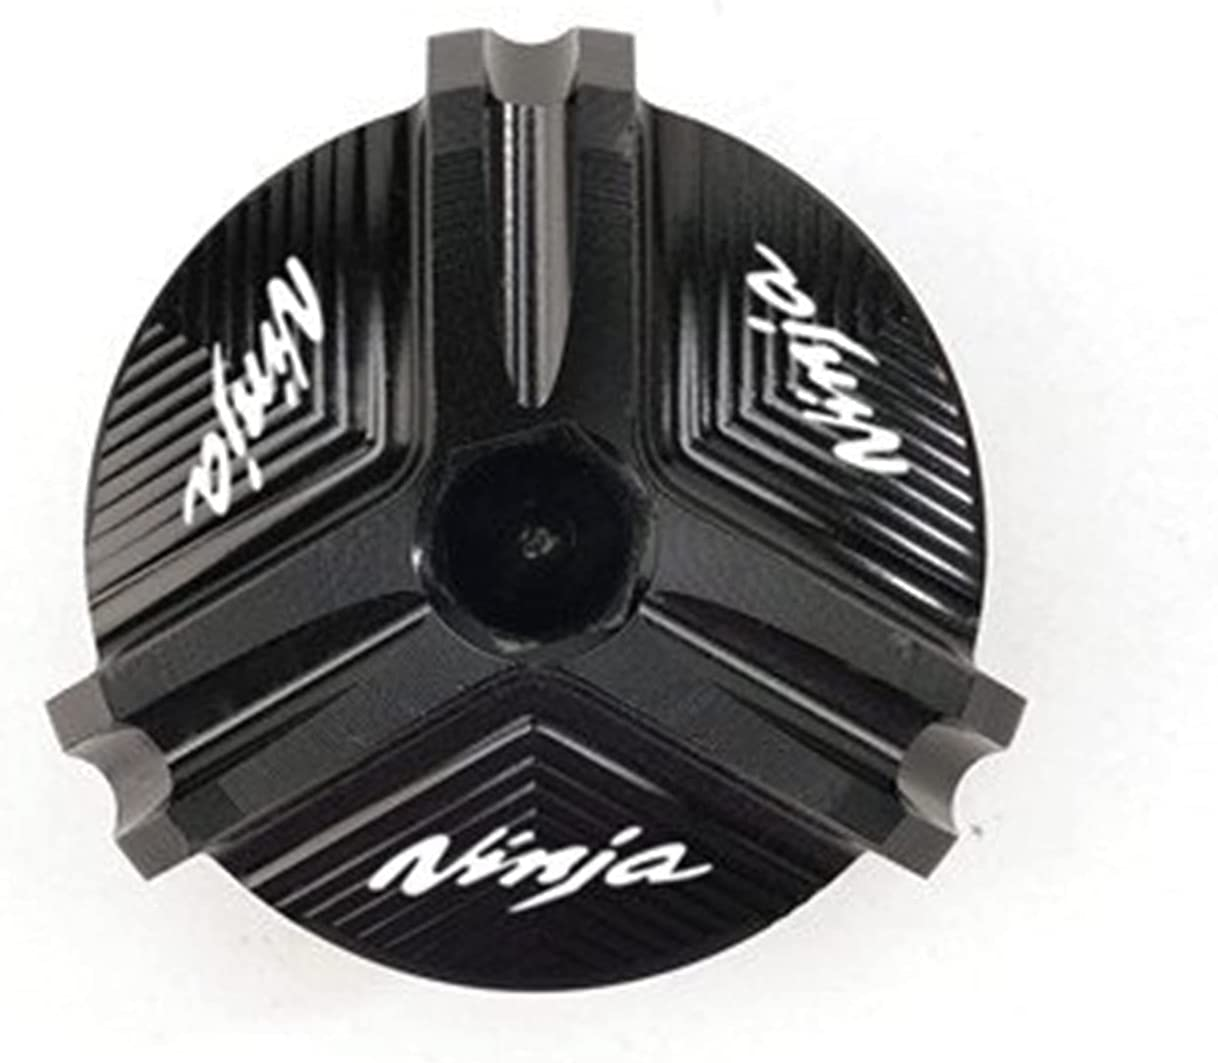 HDDTW Pro Taper Decorative Gas Caps Kawasaki for GPZ750 Limited Special Price Genuine Free Shipping ZX750 19